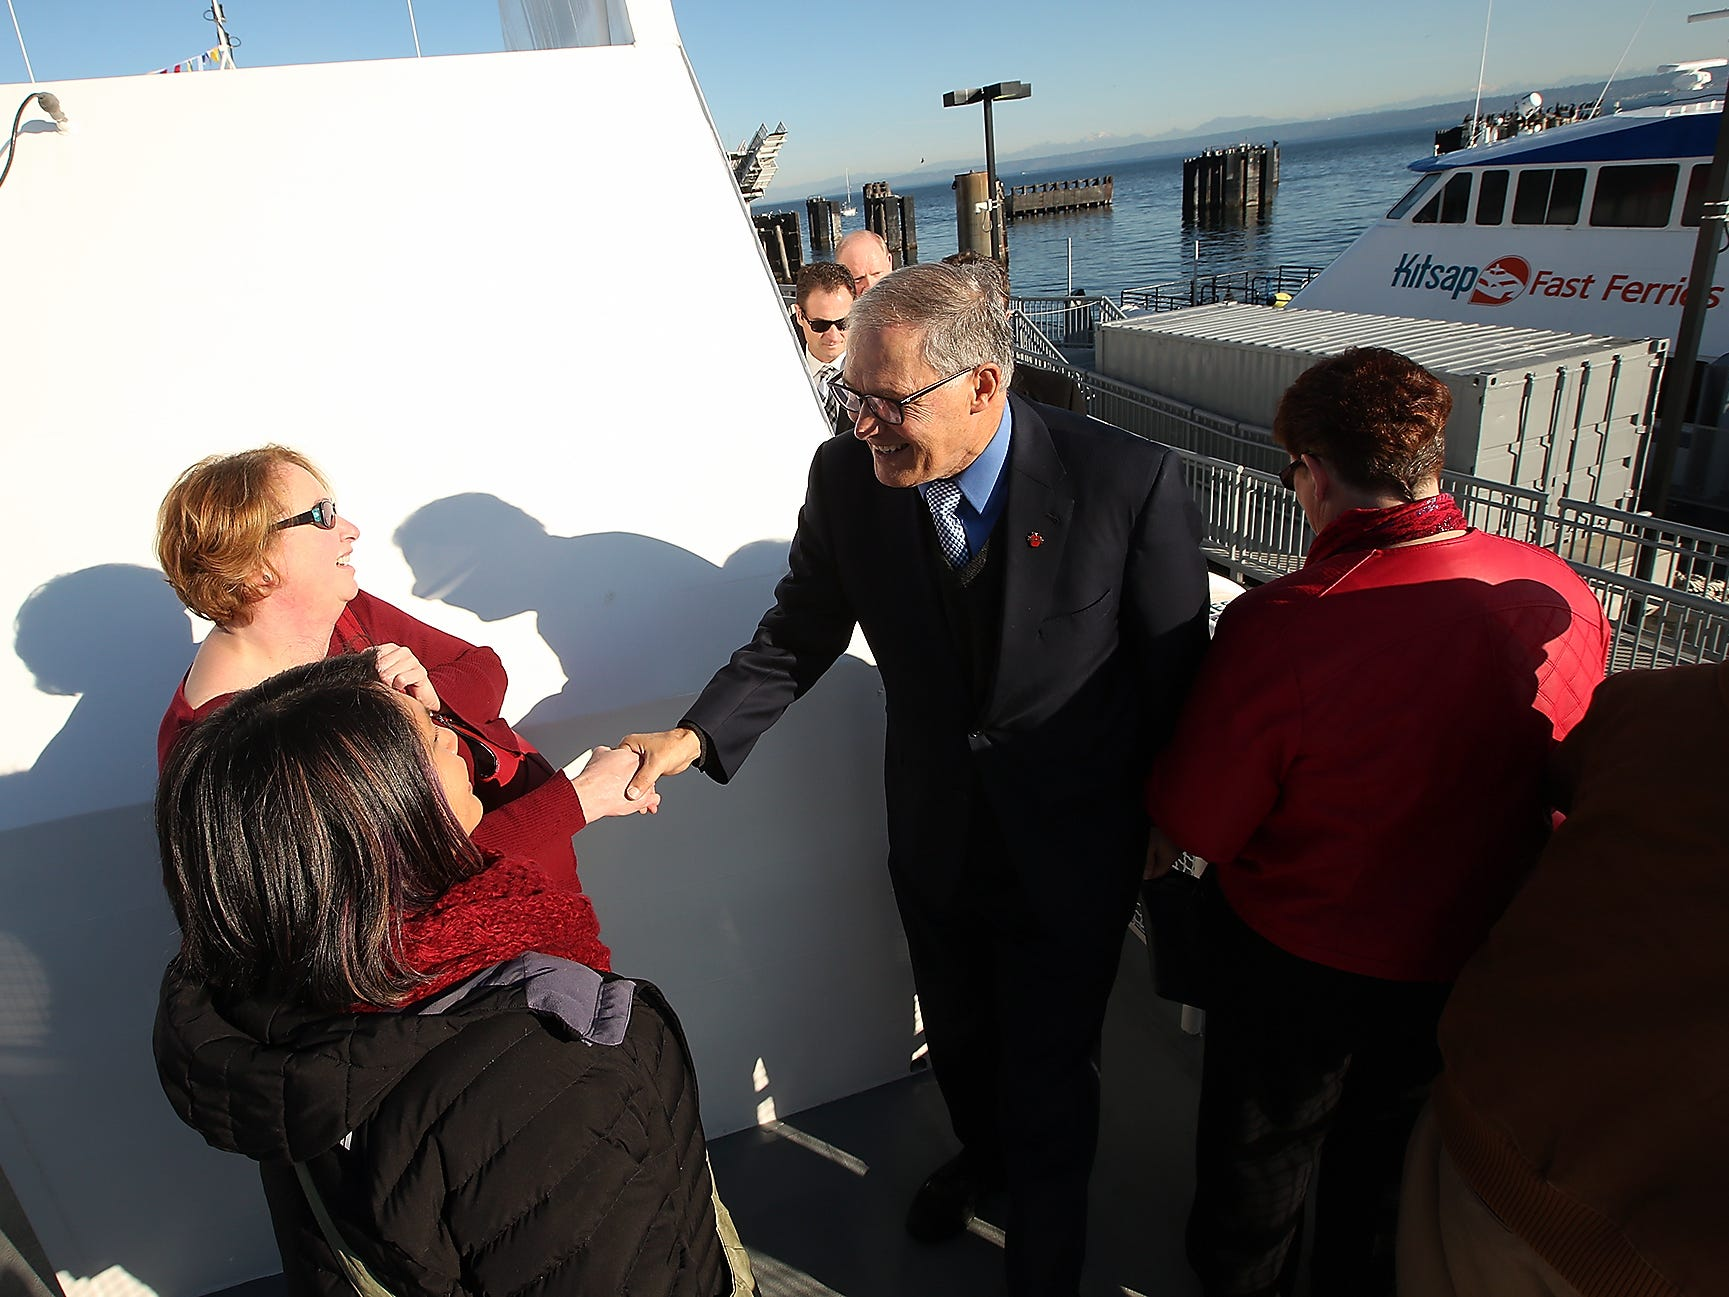 Sara Crouch, of Port Townsend, shakes Governor Jay Inslee's hand as he tours the M/V Finest at the Port of Kingston on Monday, November 19, 2018.